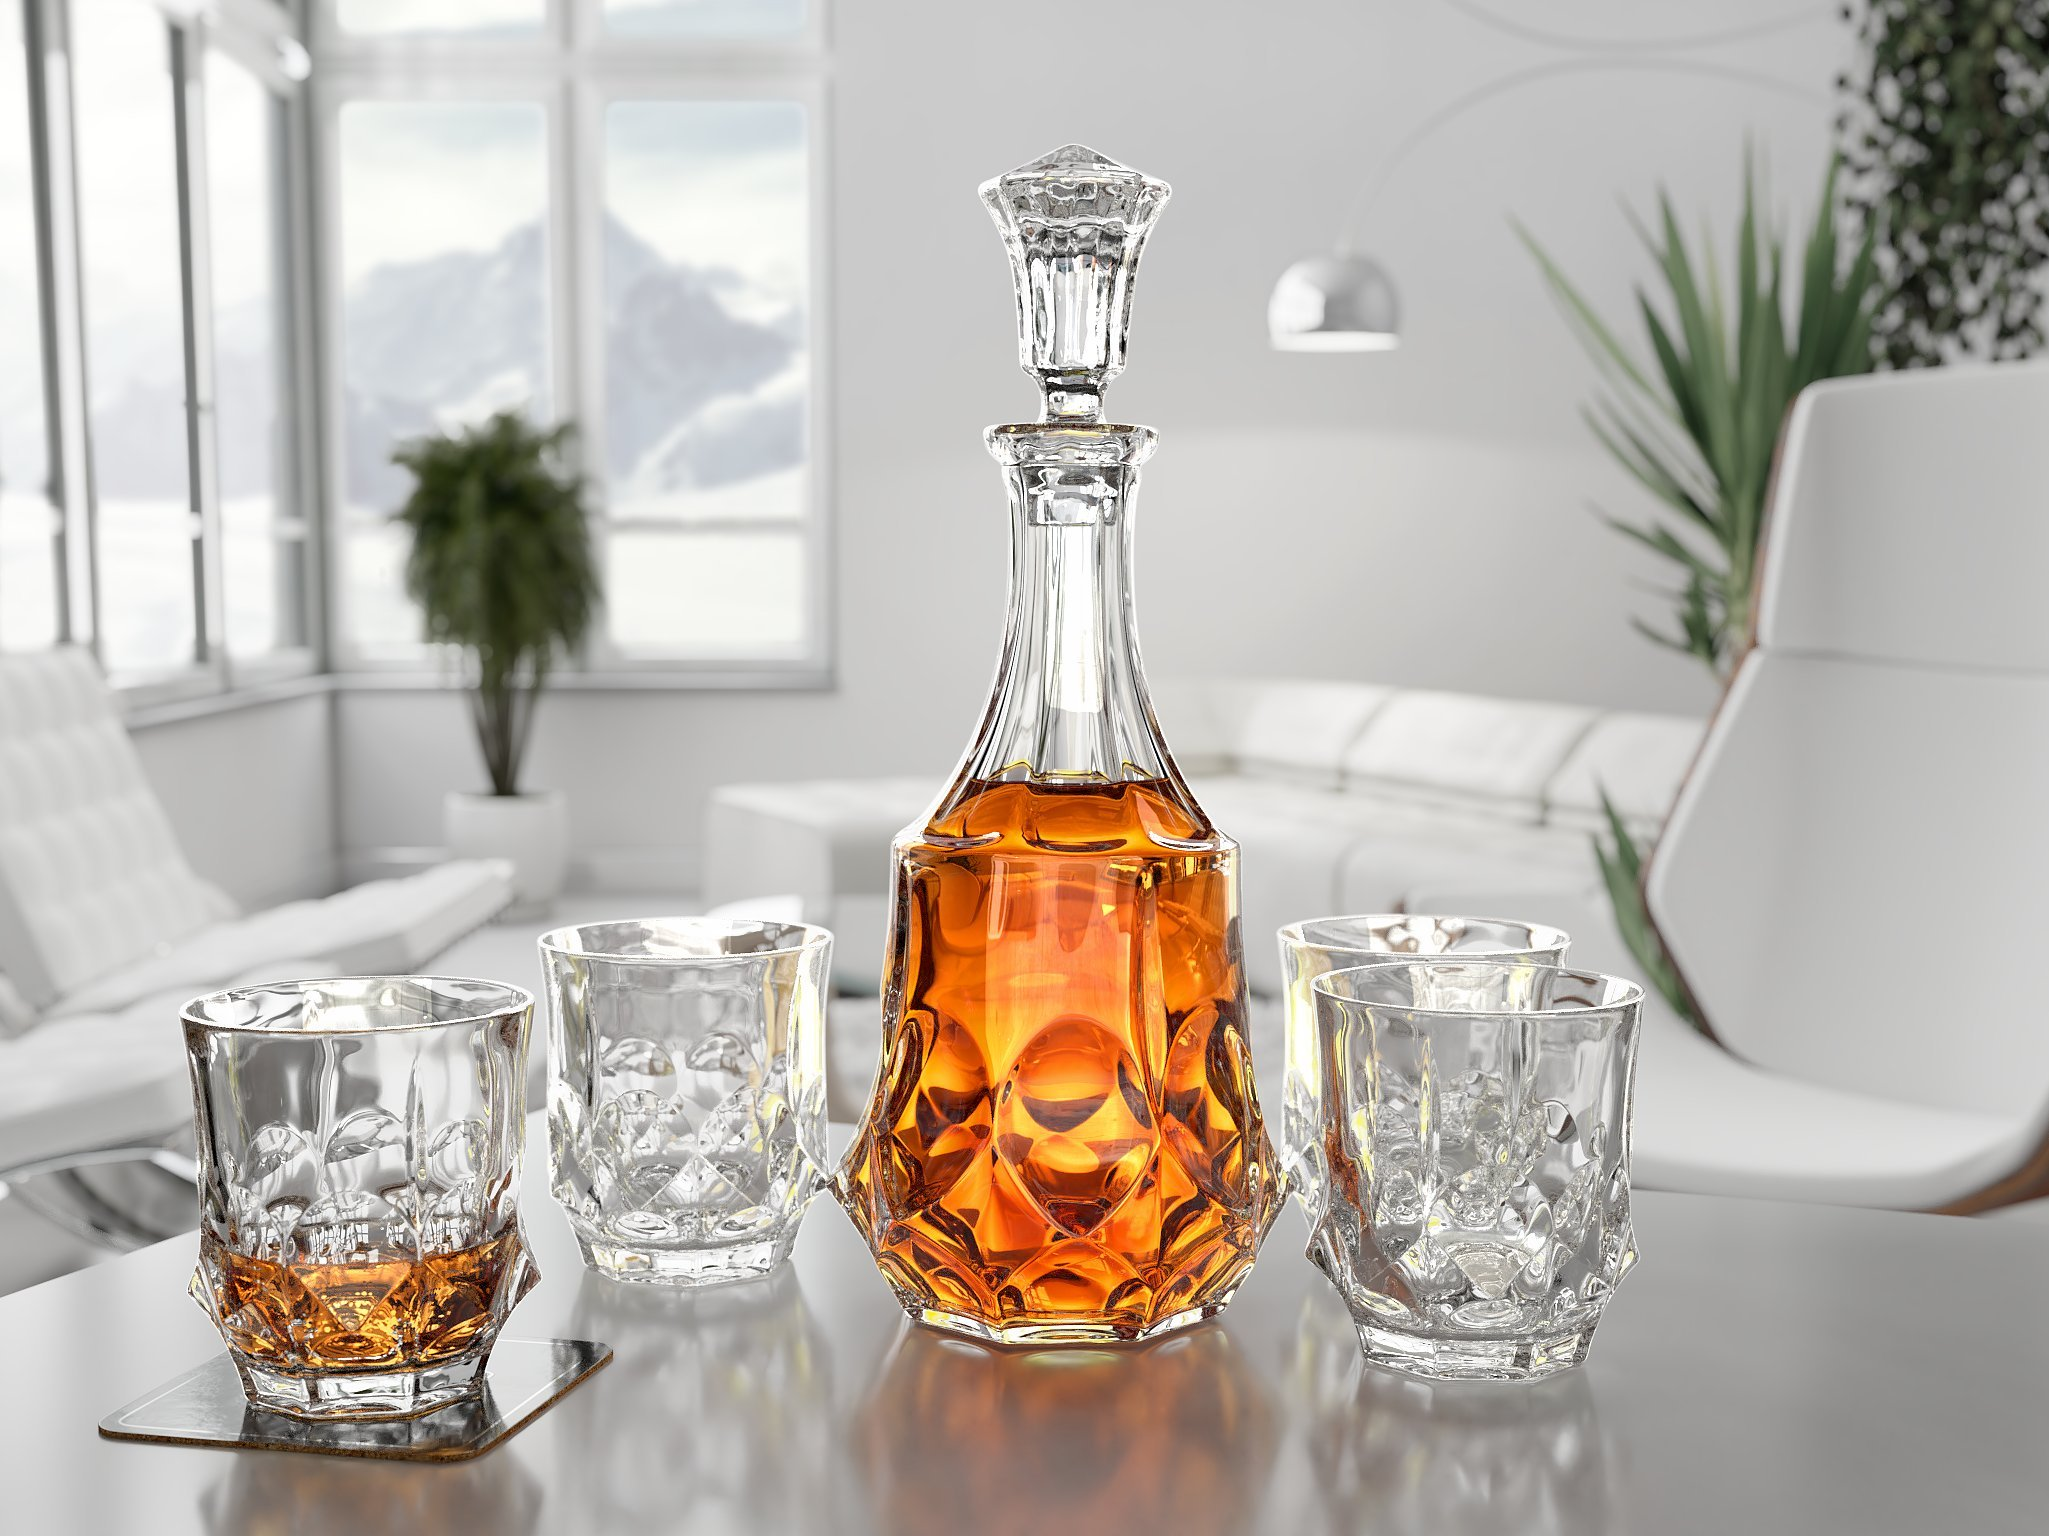 Ashcroft Imperial Whiskey Decanter Set - Lead Free Crystal Glasses for Scotch, Rum, Old Fashioned 5 Piece by Ashcroft Fine Glassware (Image #5)